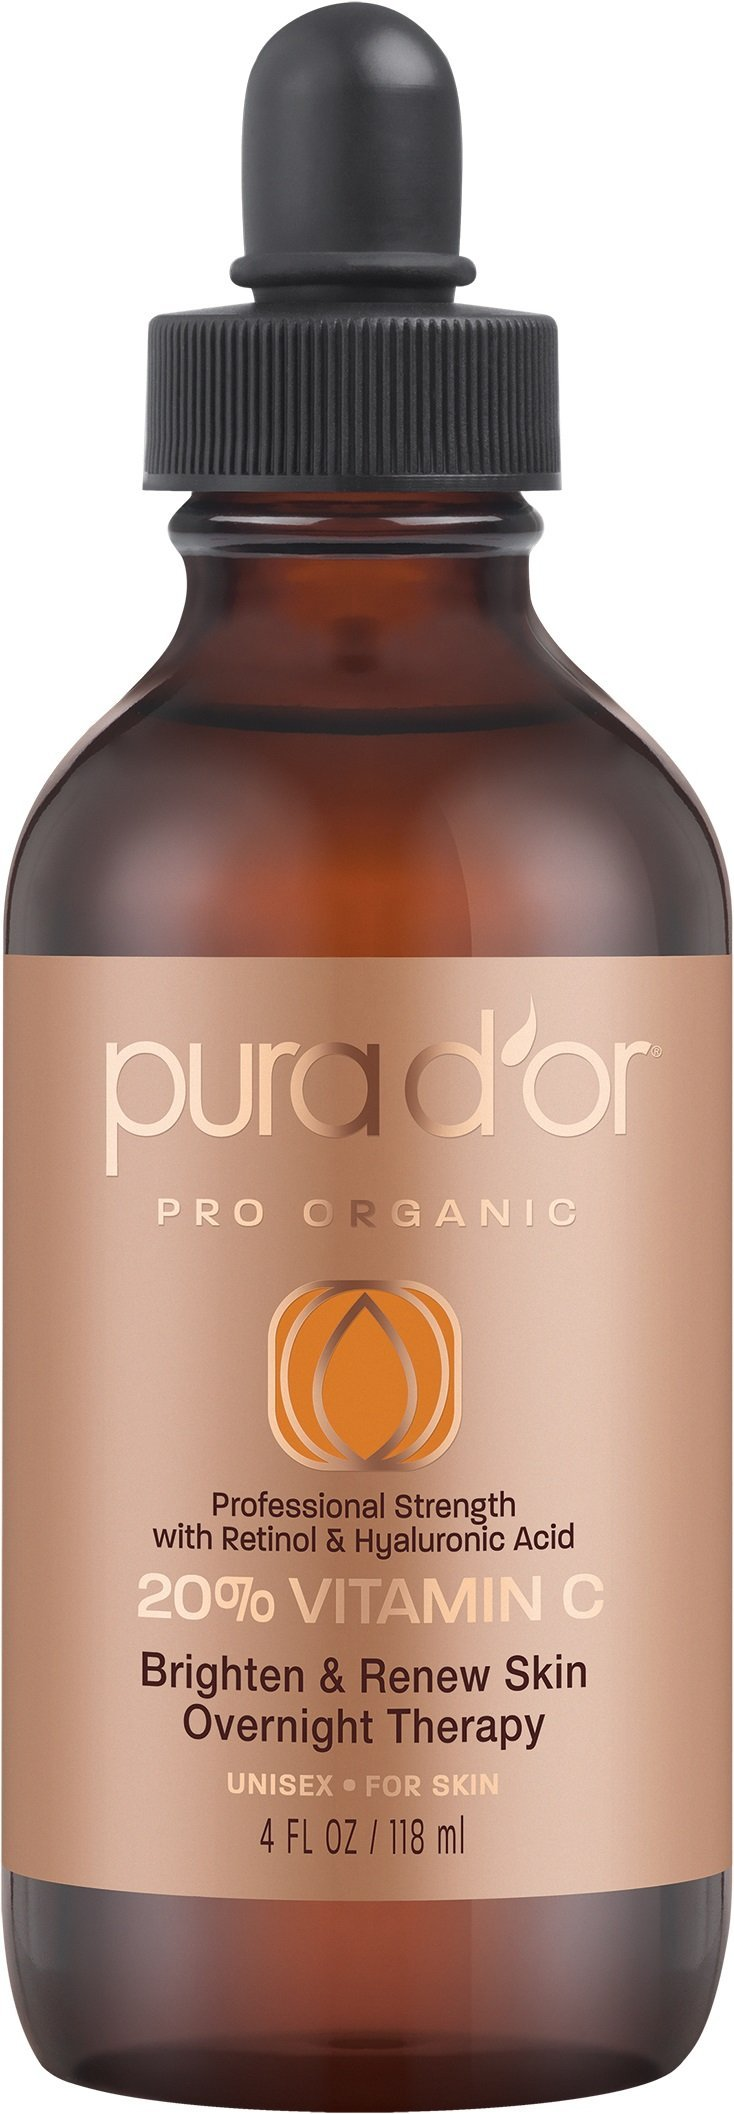 PURA D'OR 20% Vitamin C Serum Professional Strength Anti-Aging Skin Therapy Organic Argan Oil, Hyaluronic Acid & Vitamin E, 4 Fluid Ounce